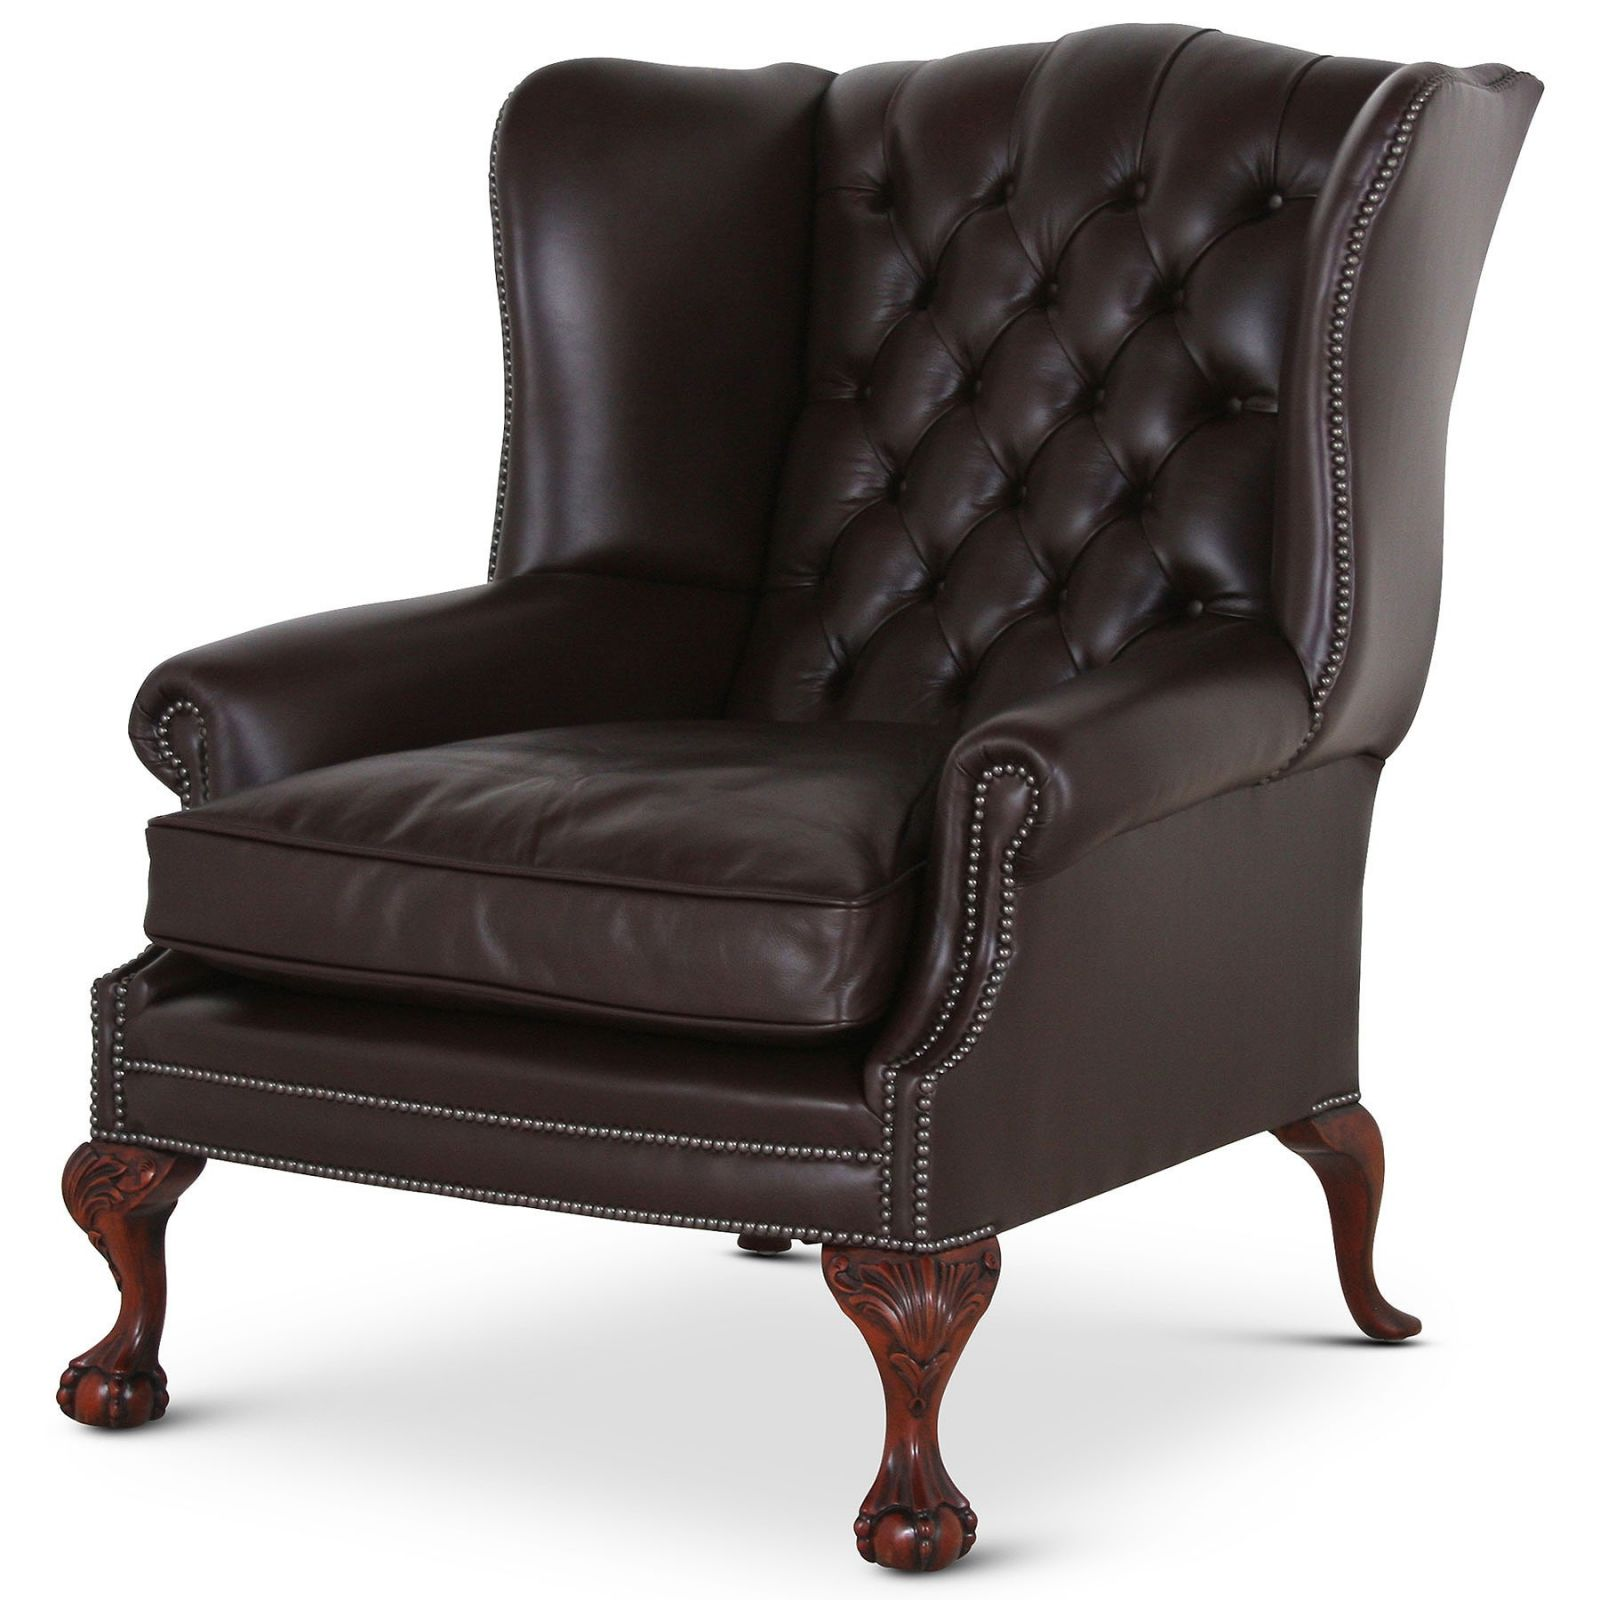 Coleridge Grande traditional leather wing chair